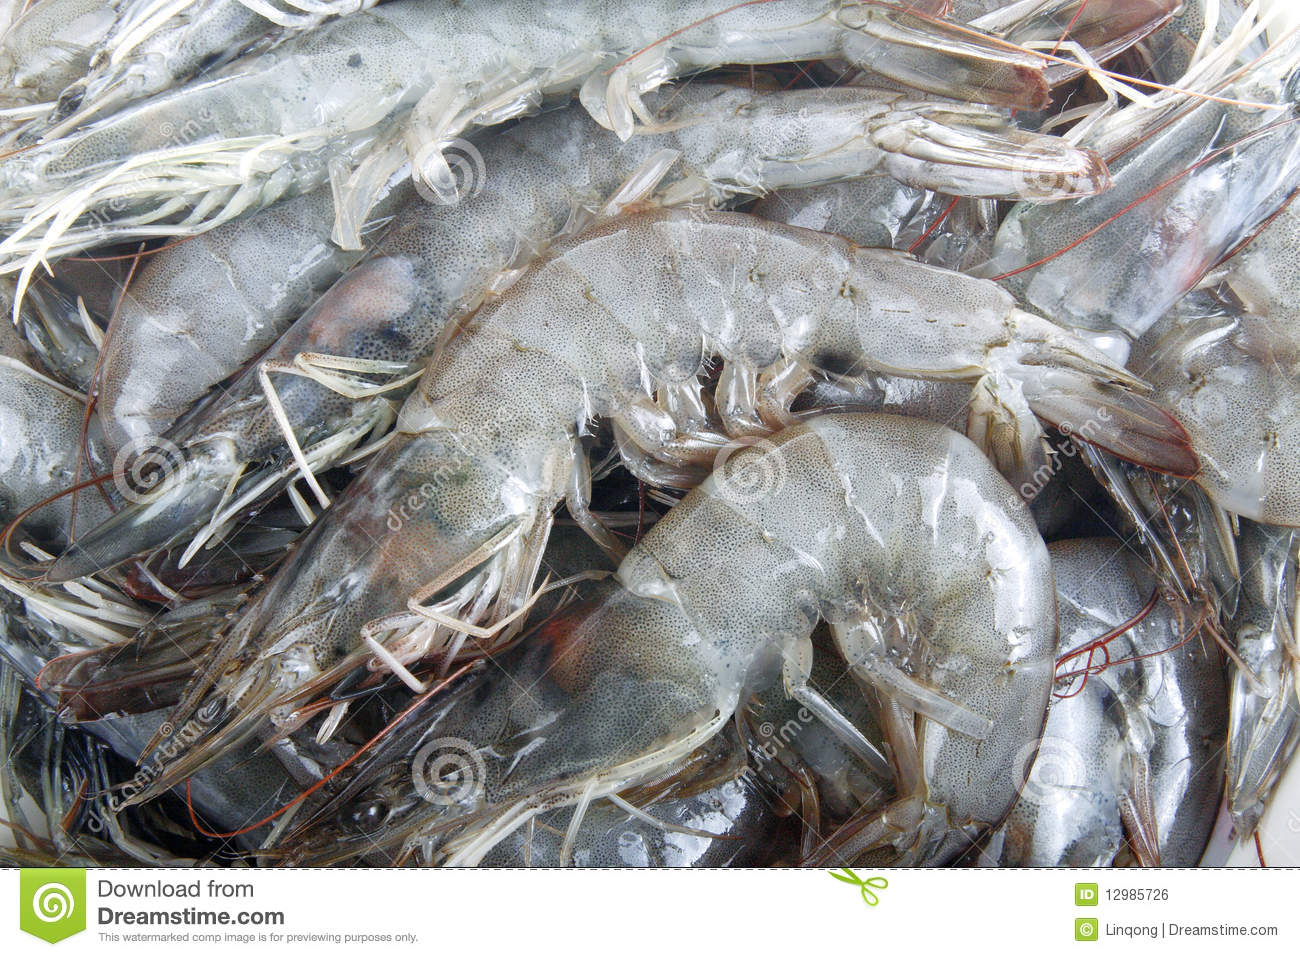 Raw Shrimp Royalty Free Stock Image - Image: 12985726